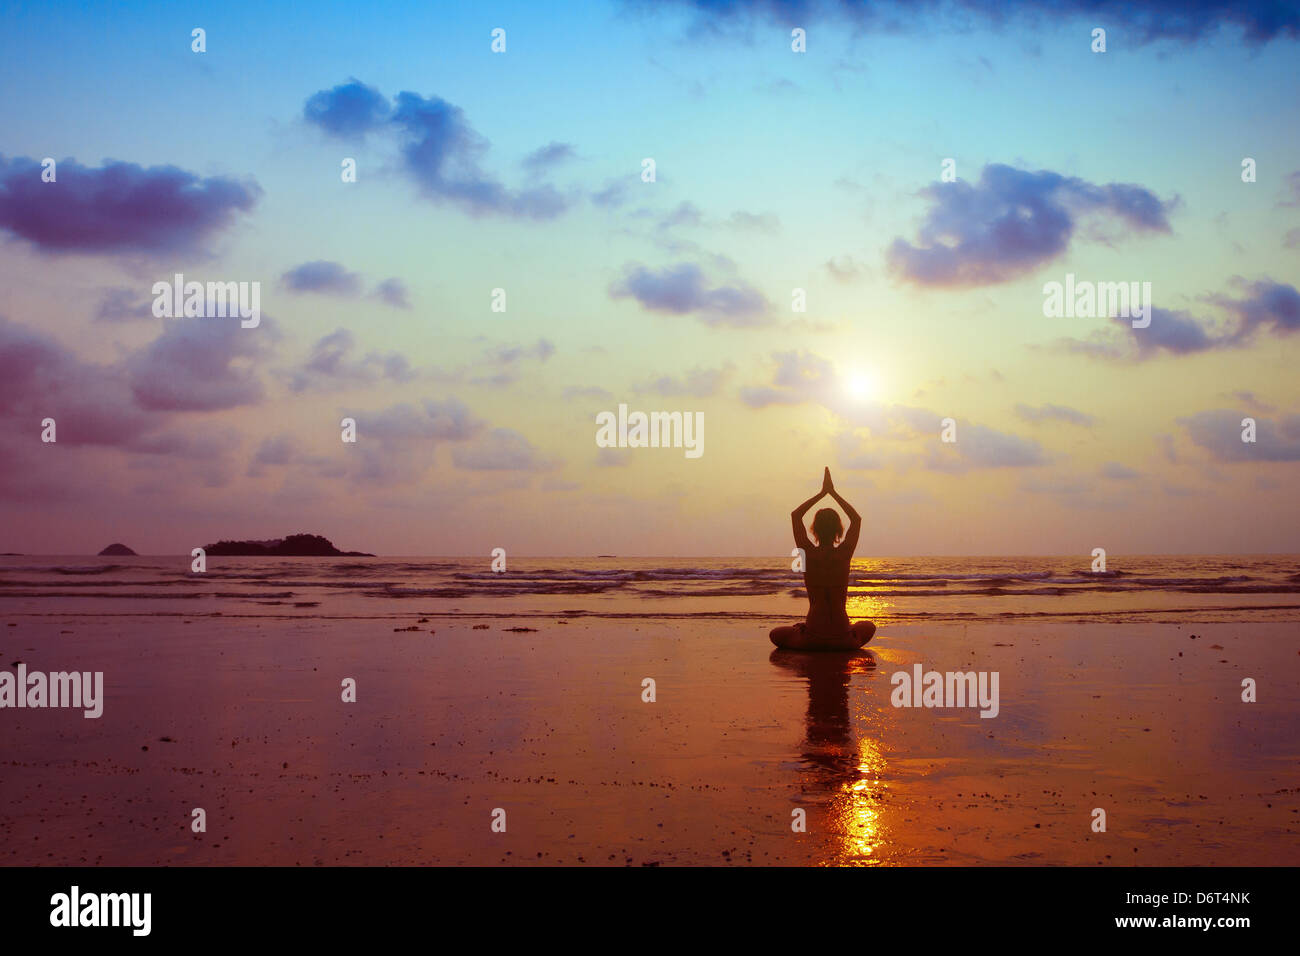 breathing exercises, silhouette of woman practicing yoga - Stock Image